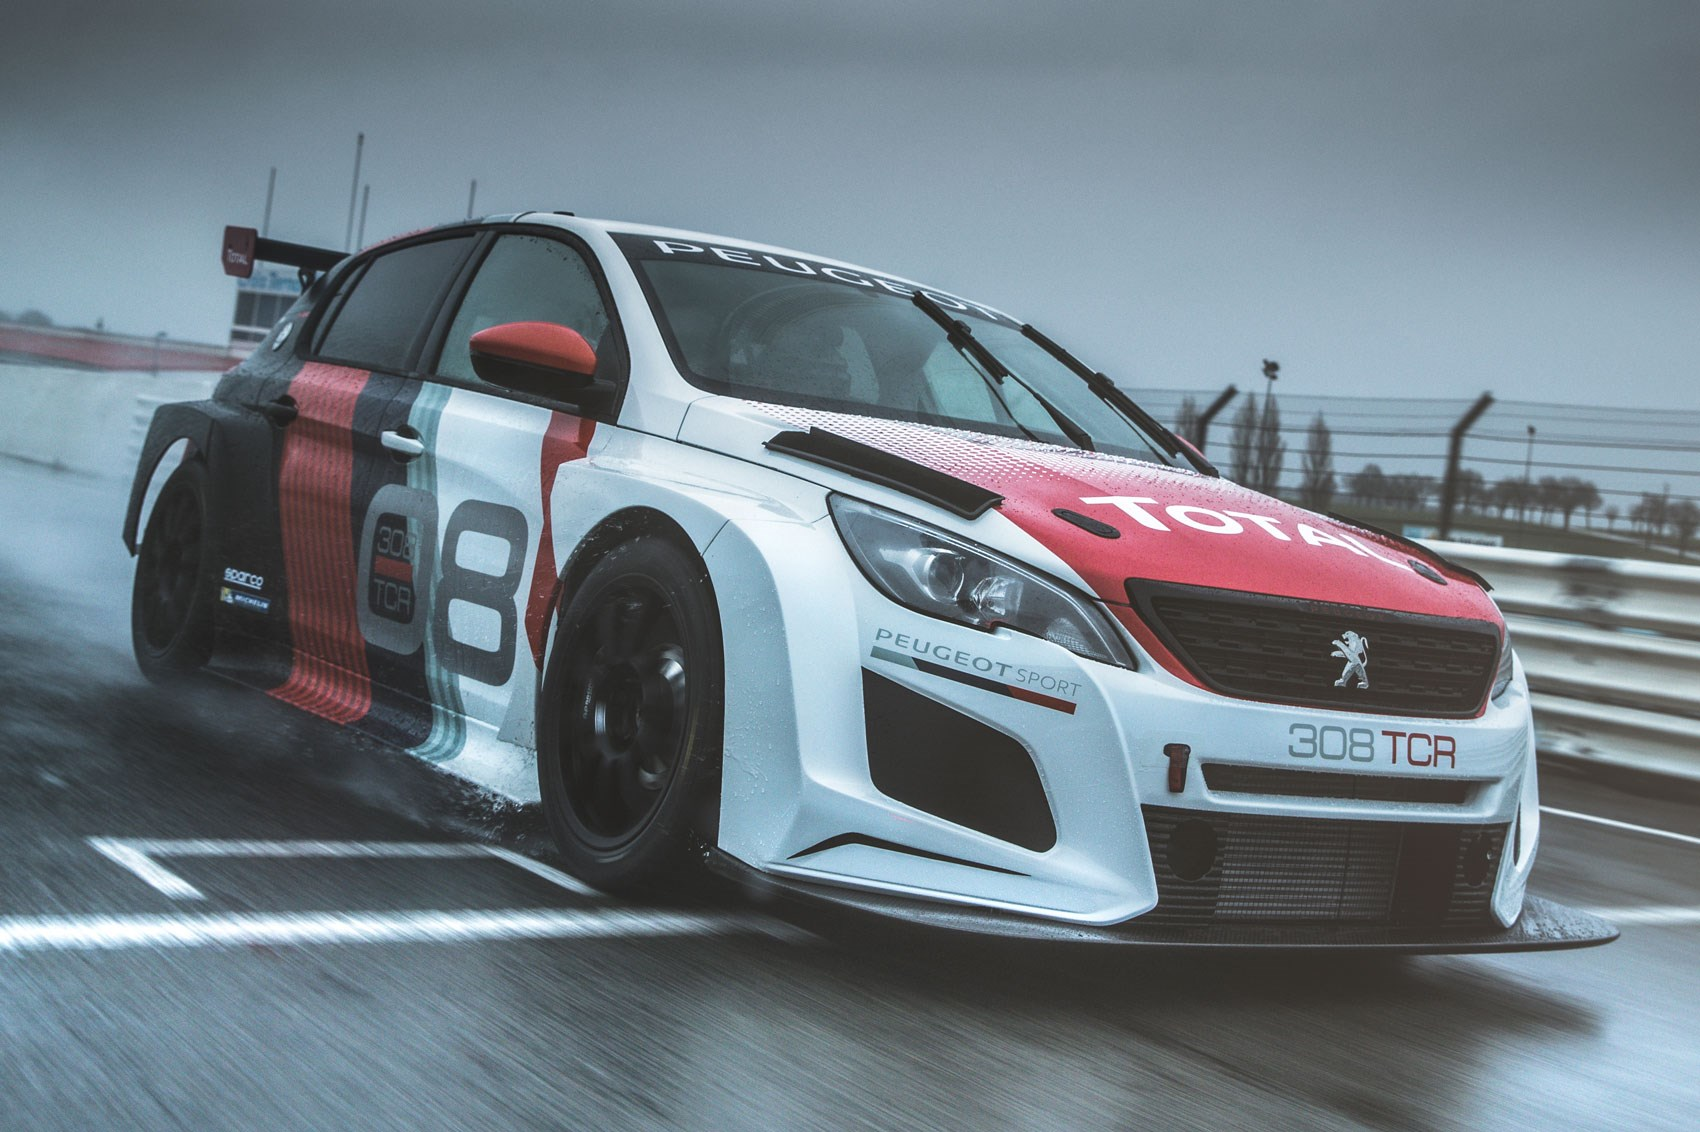 Le Meilleur Peugeot 308Tcr 2018 Race Car Pics Specs And Price Car Ce Mois Ci